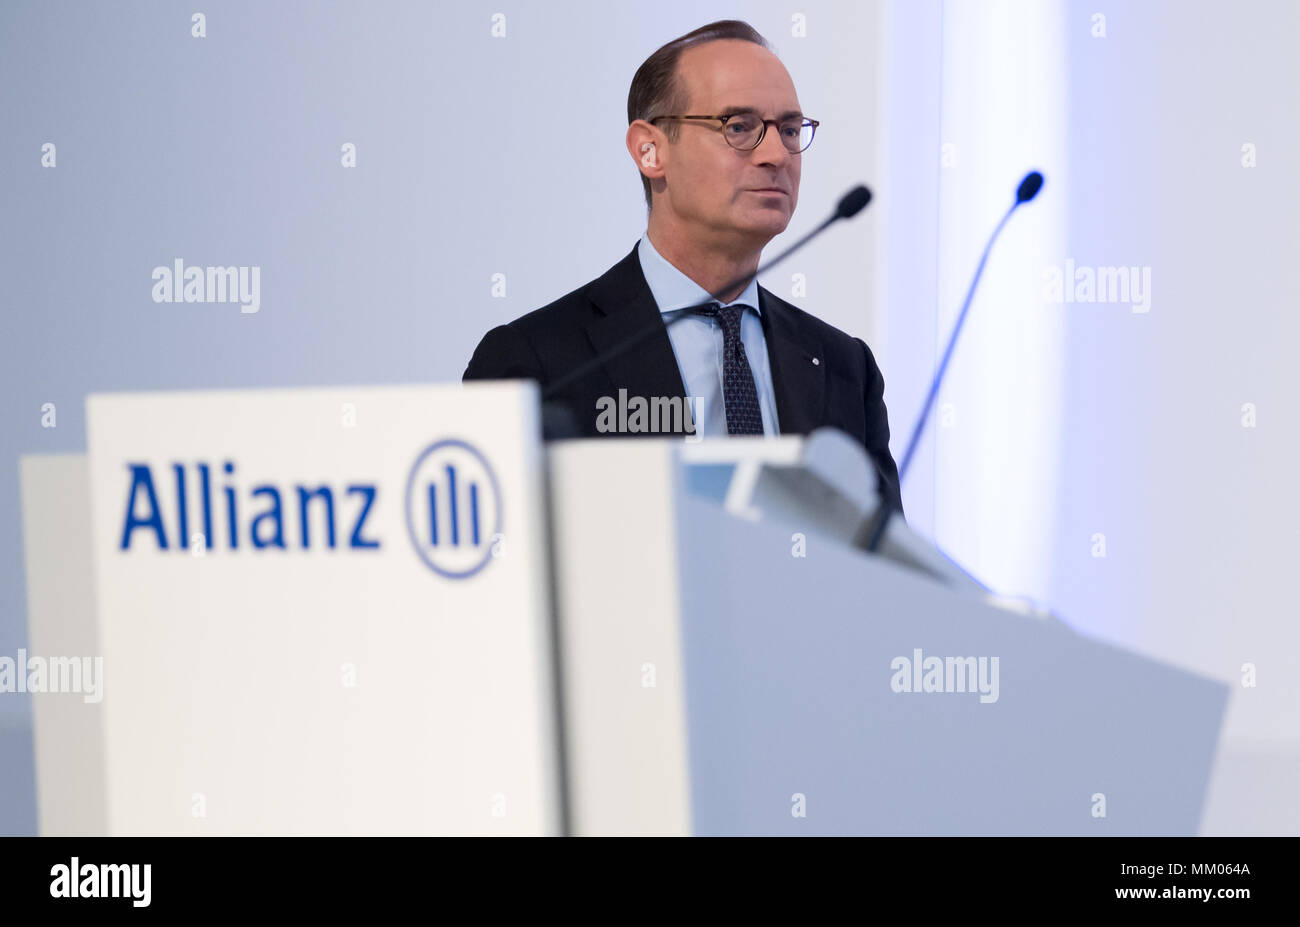 09 May 2018, Germany, Munich: CEO of the insurance company Allianz SE, Oliver Baete, getting on the stage before the begin of the annual general meeting of the insurance company Allianz. Photo: Sven Hoppe/dpa Stock Photo